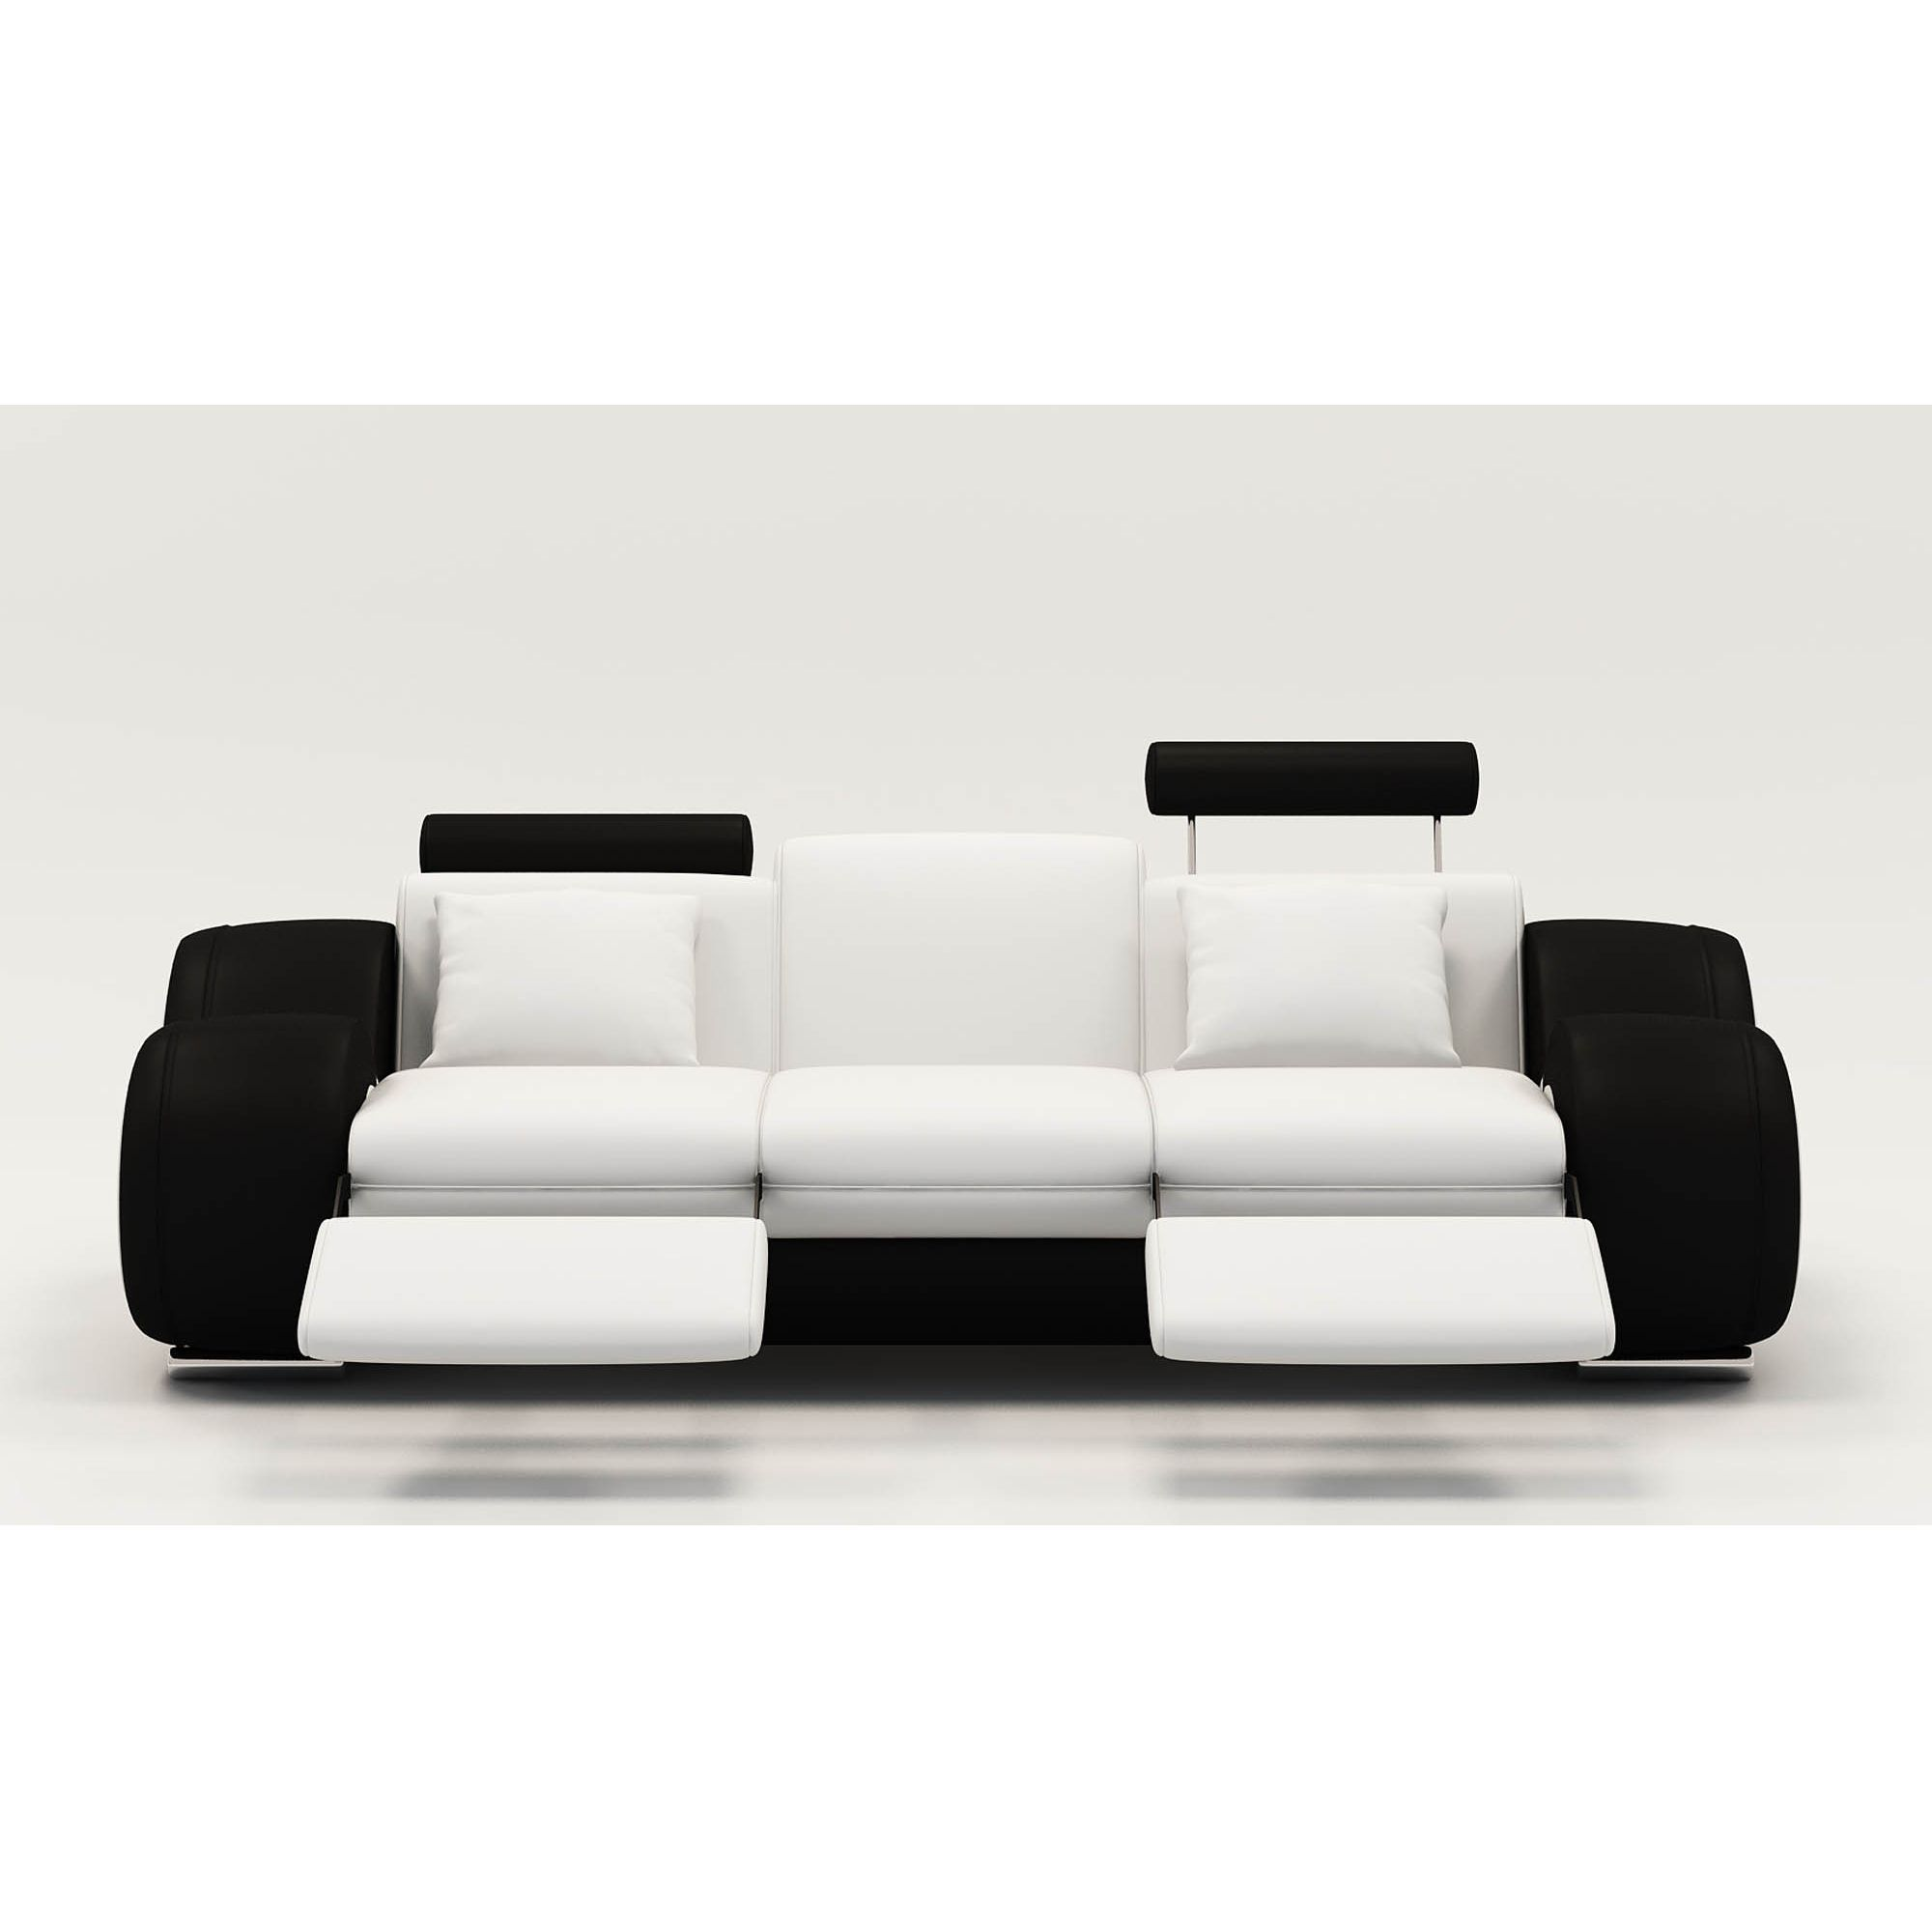 Deco in paris canape design 3 places cuir blanc et noir appuies tetes relax - Canape design 3 places ...